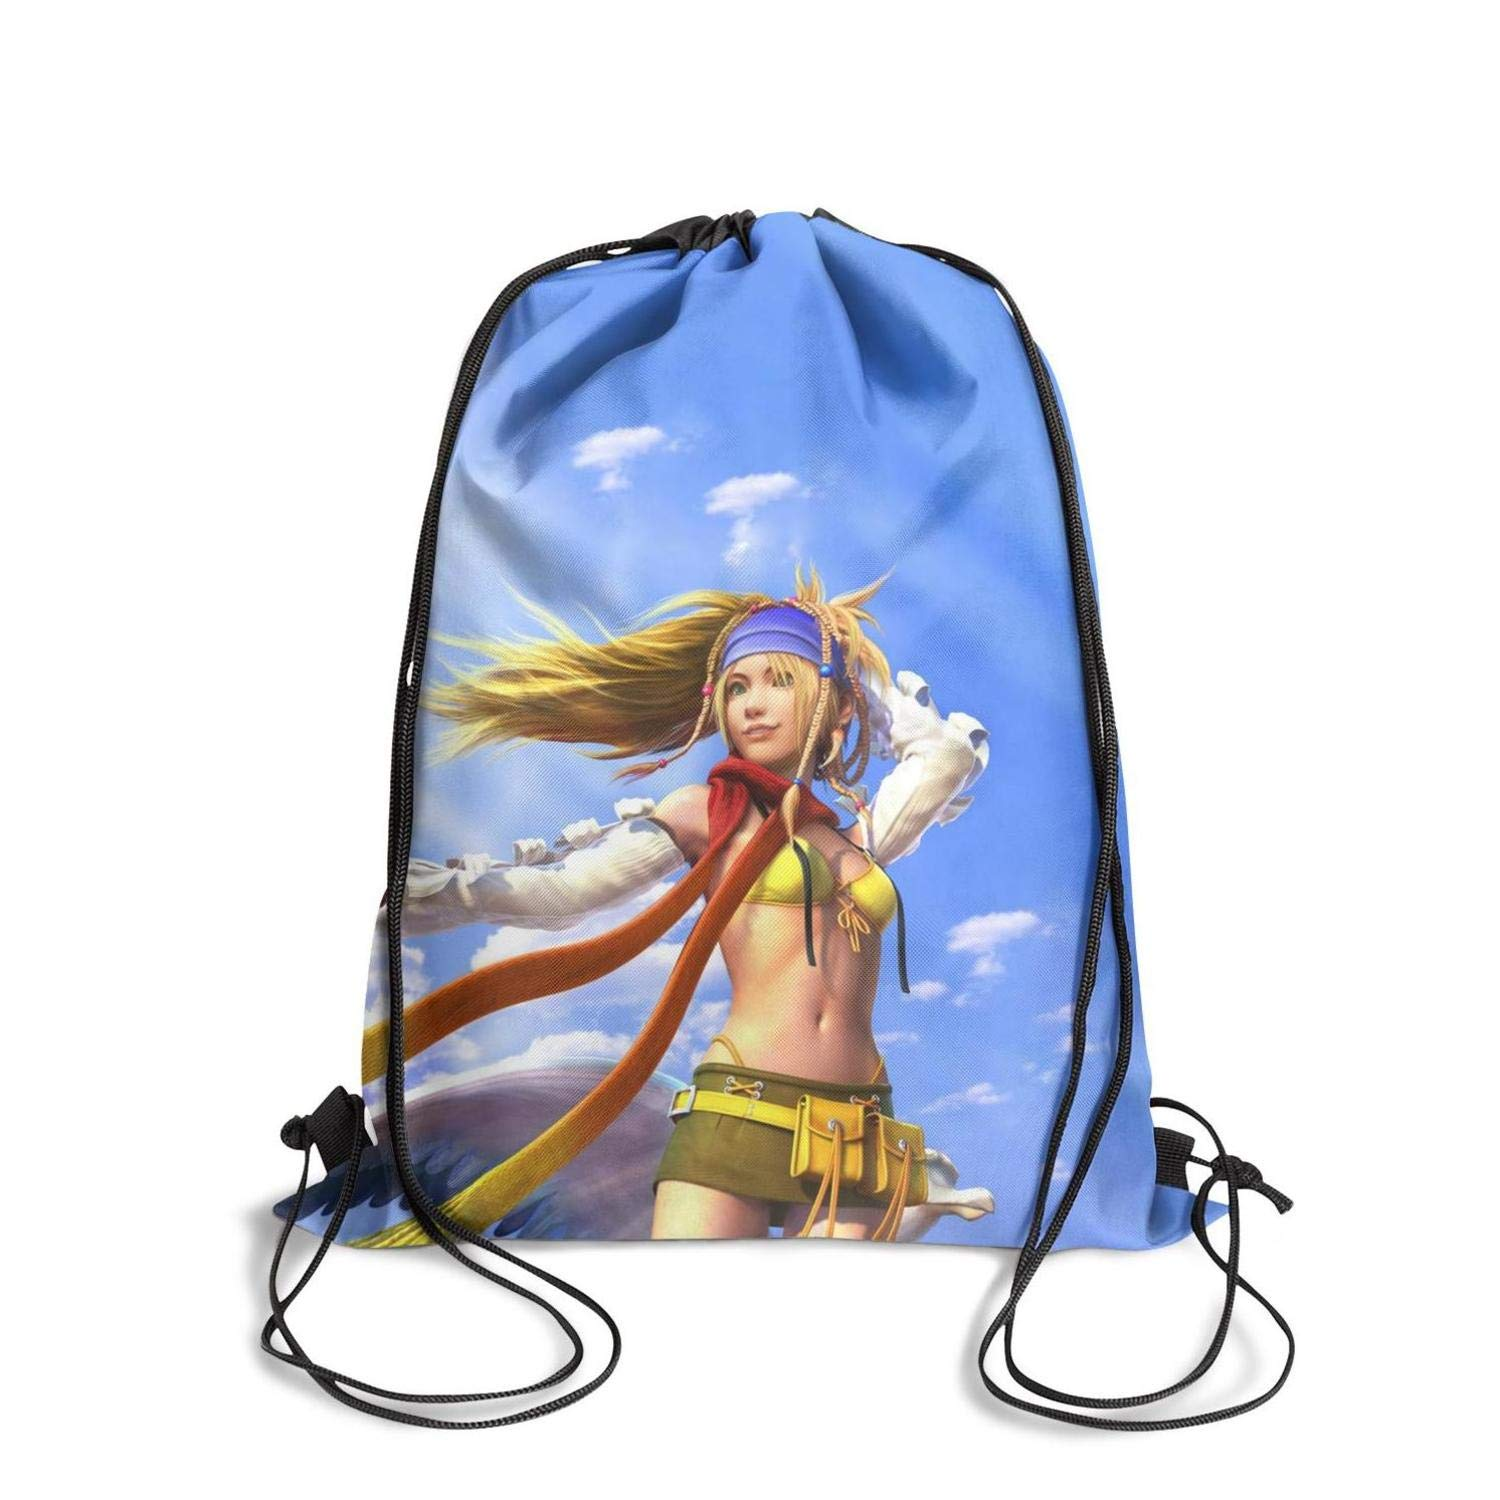 Omenae Drawstring Backpack Bags Sports Cinch Sack String Backpack Storage Bags for Traveling Gym Yoga Storage-Popular Game